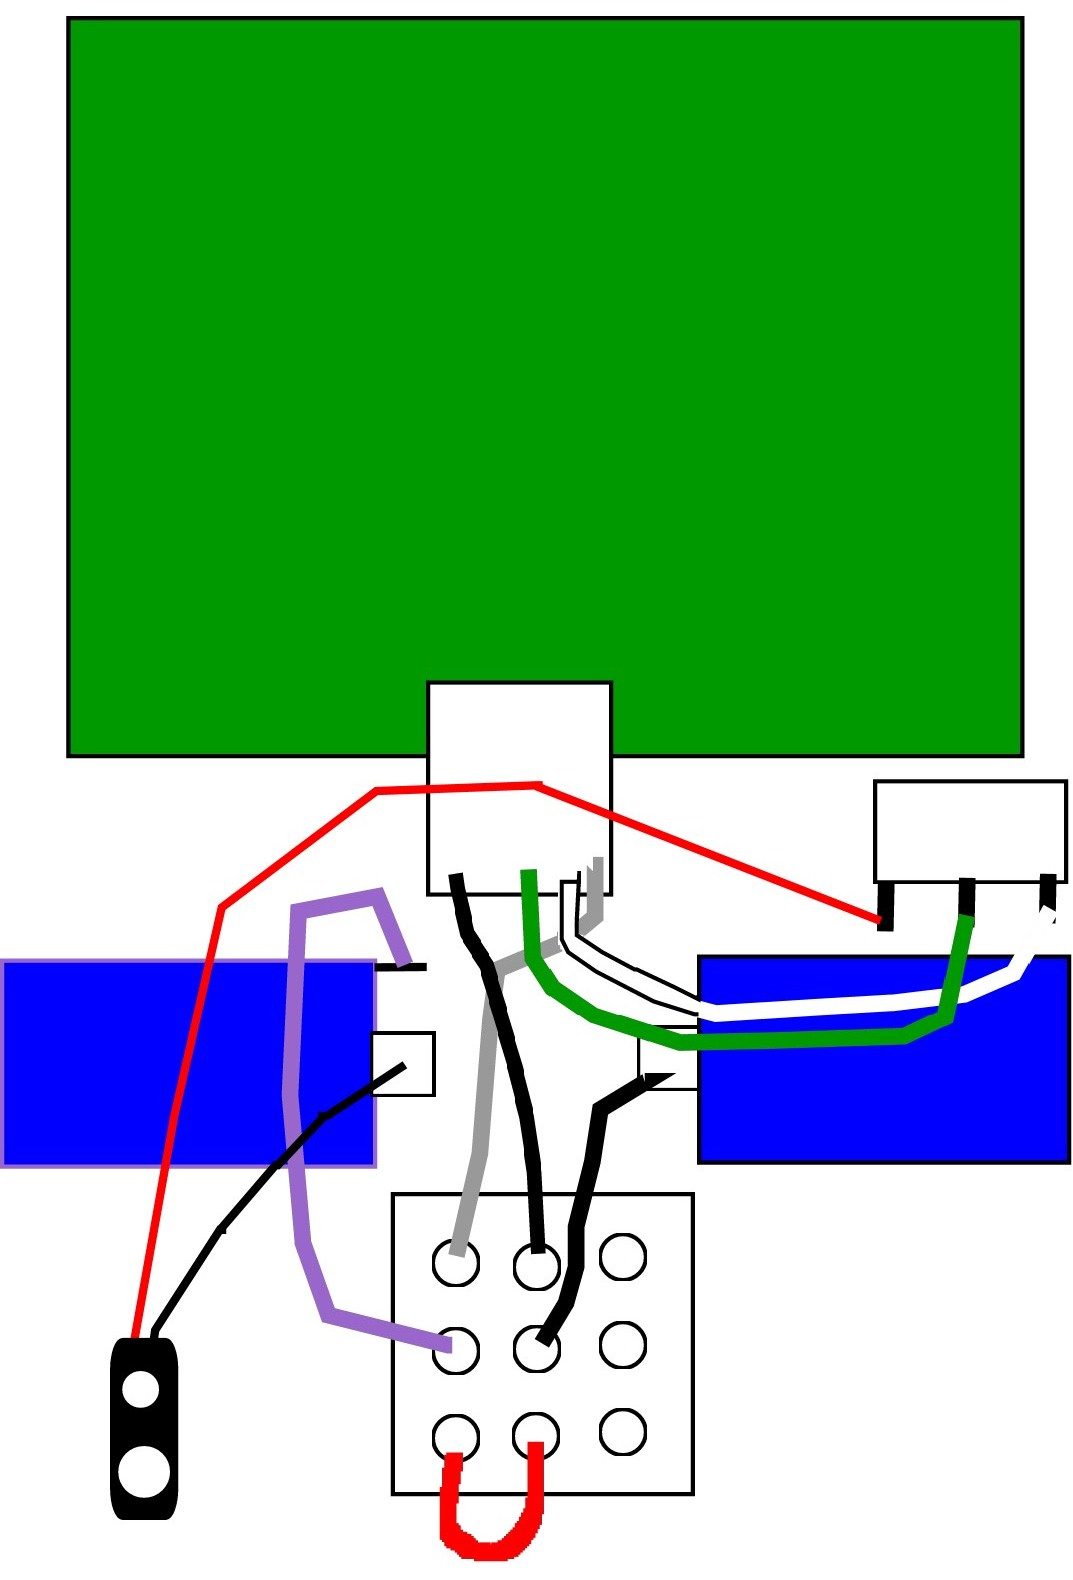 small resolution of 2 sd hoist wiring diagram electric pallet jack diagram yale cpv hoist wiring diagram yale electric chain hoist wiring diagram